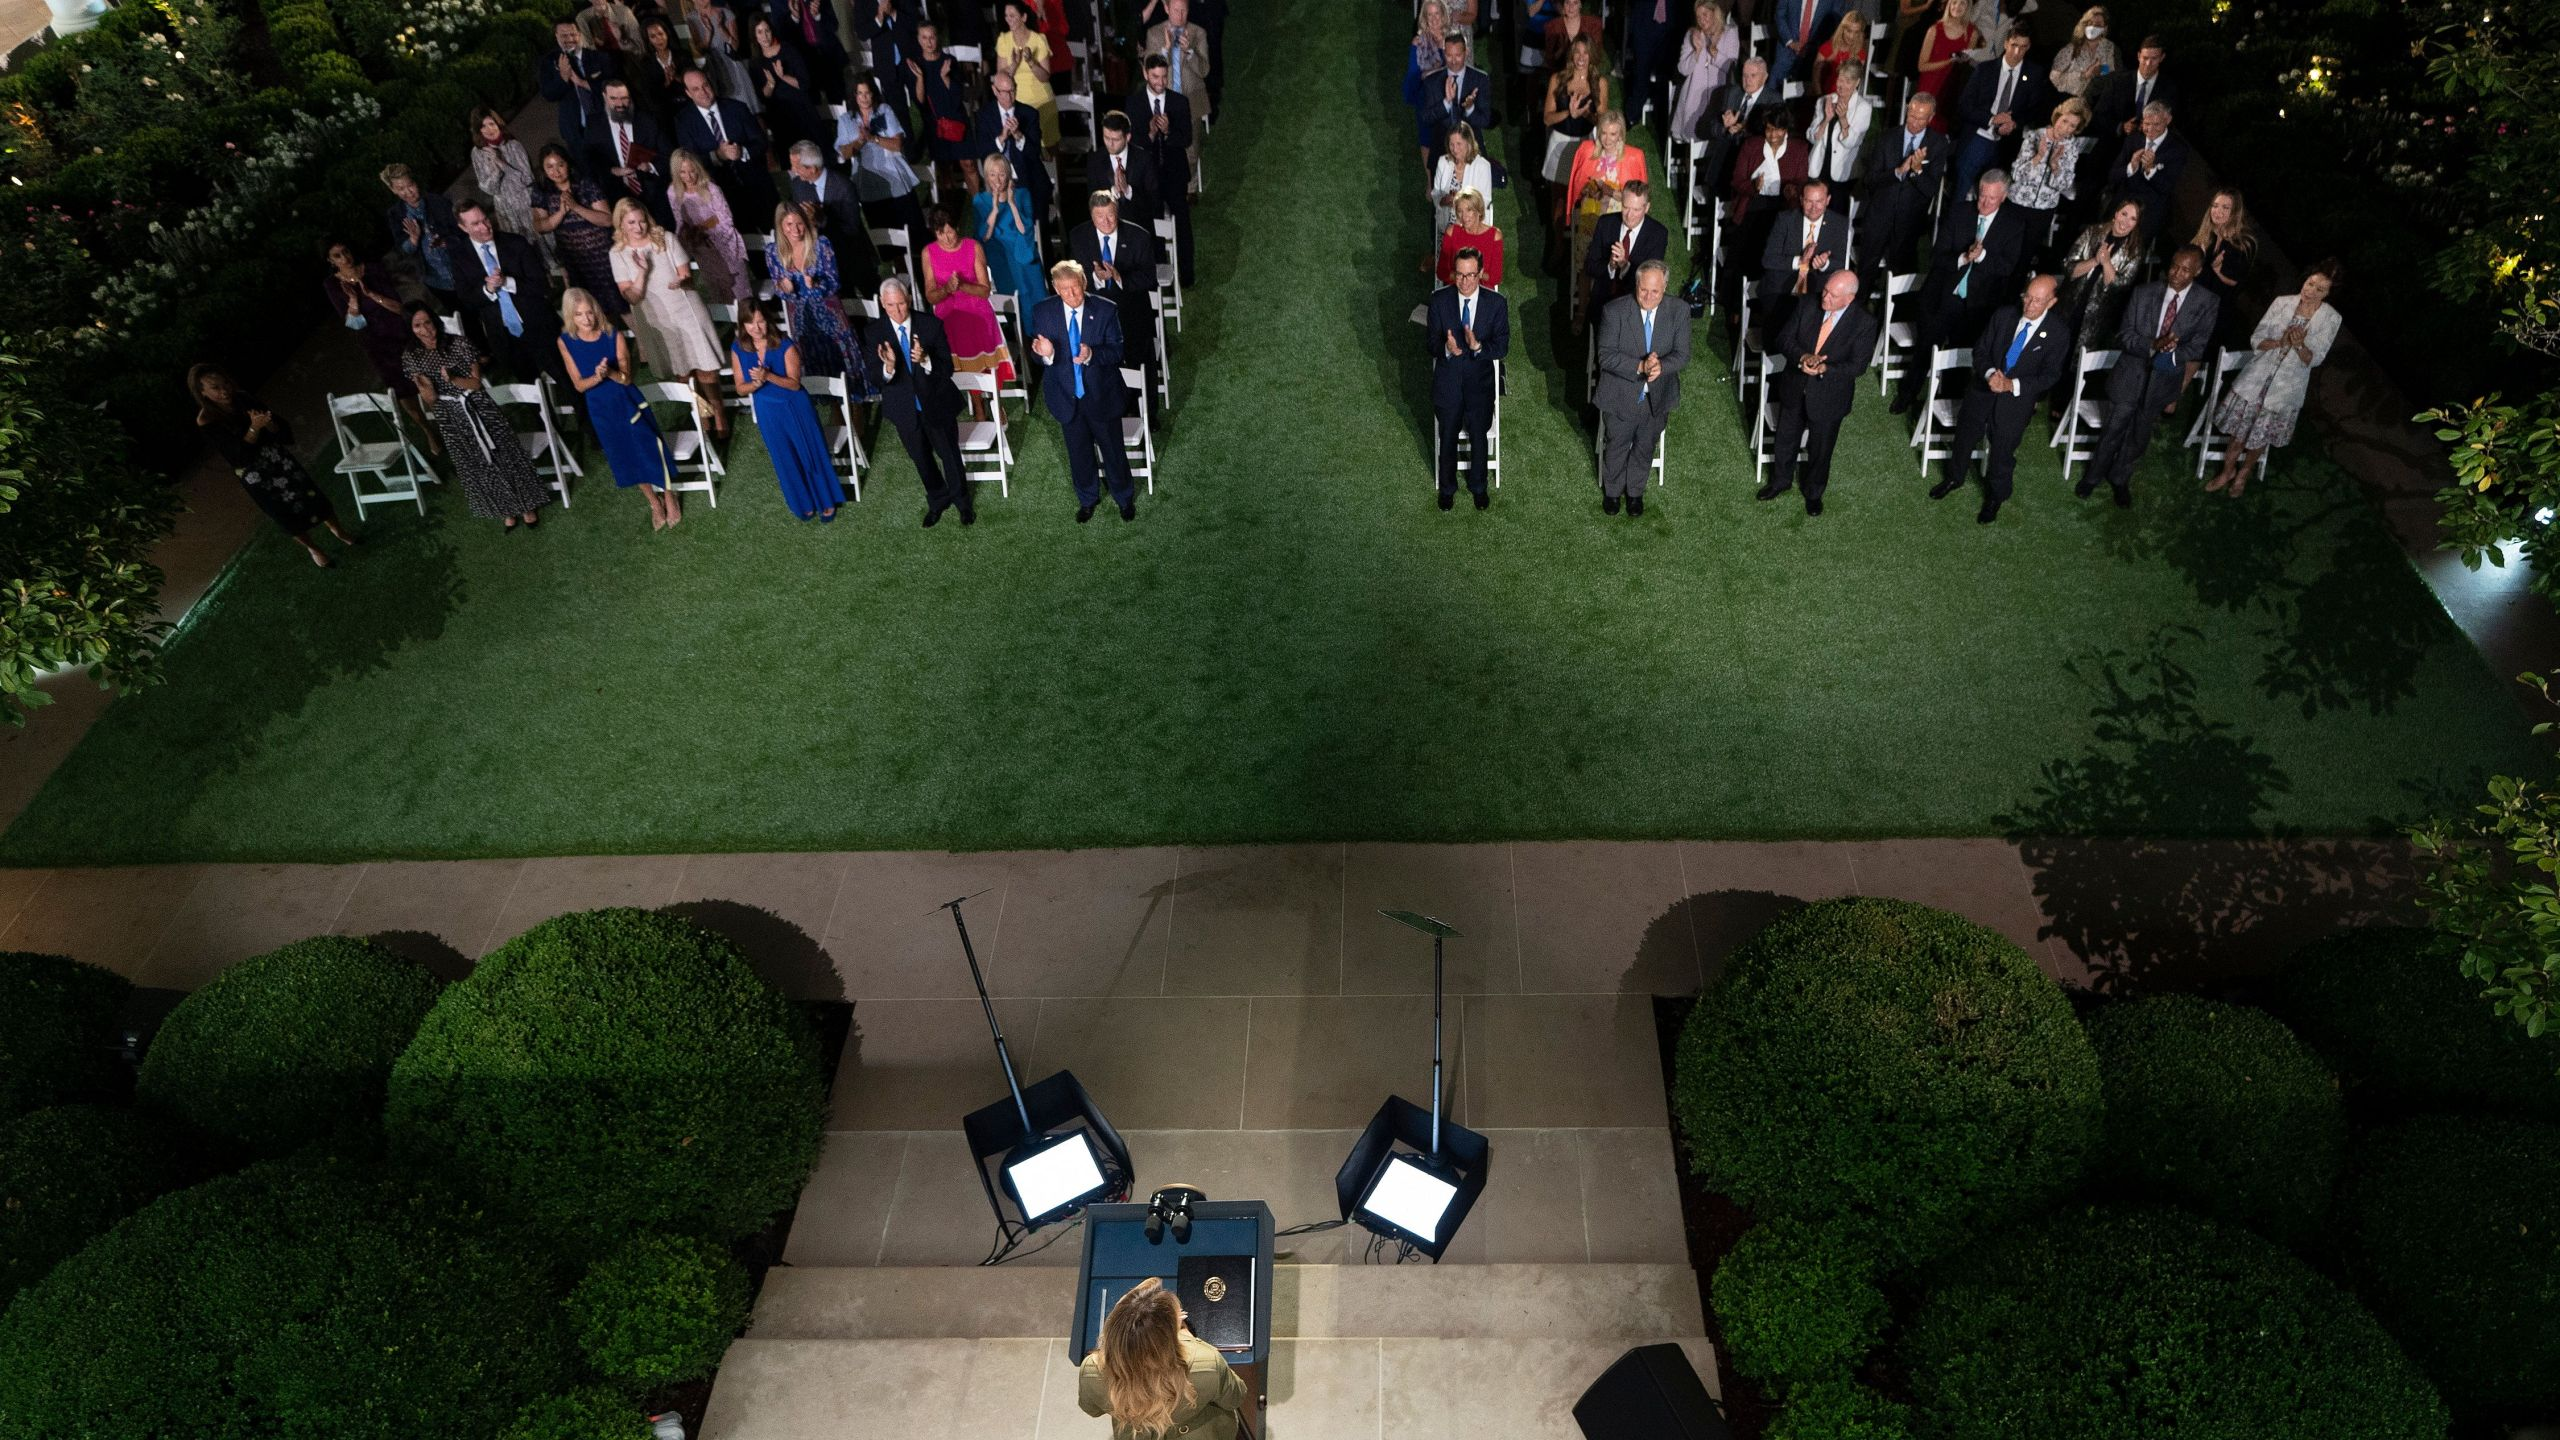 President Donald Trump along with Vice President Mike Pence and Second Lady Karen Pence applaud first lady Melania Trump as she arrives to address the Republican Convention during its second day from the Rose Garden of the White House on Aug. 25, 2020. (BRENDAN SMIALOWSKI/AFP via Getty Images)